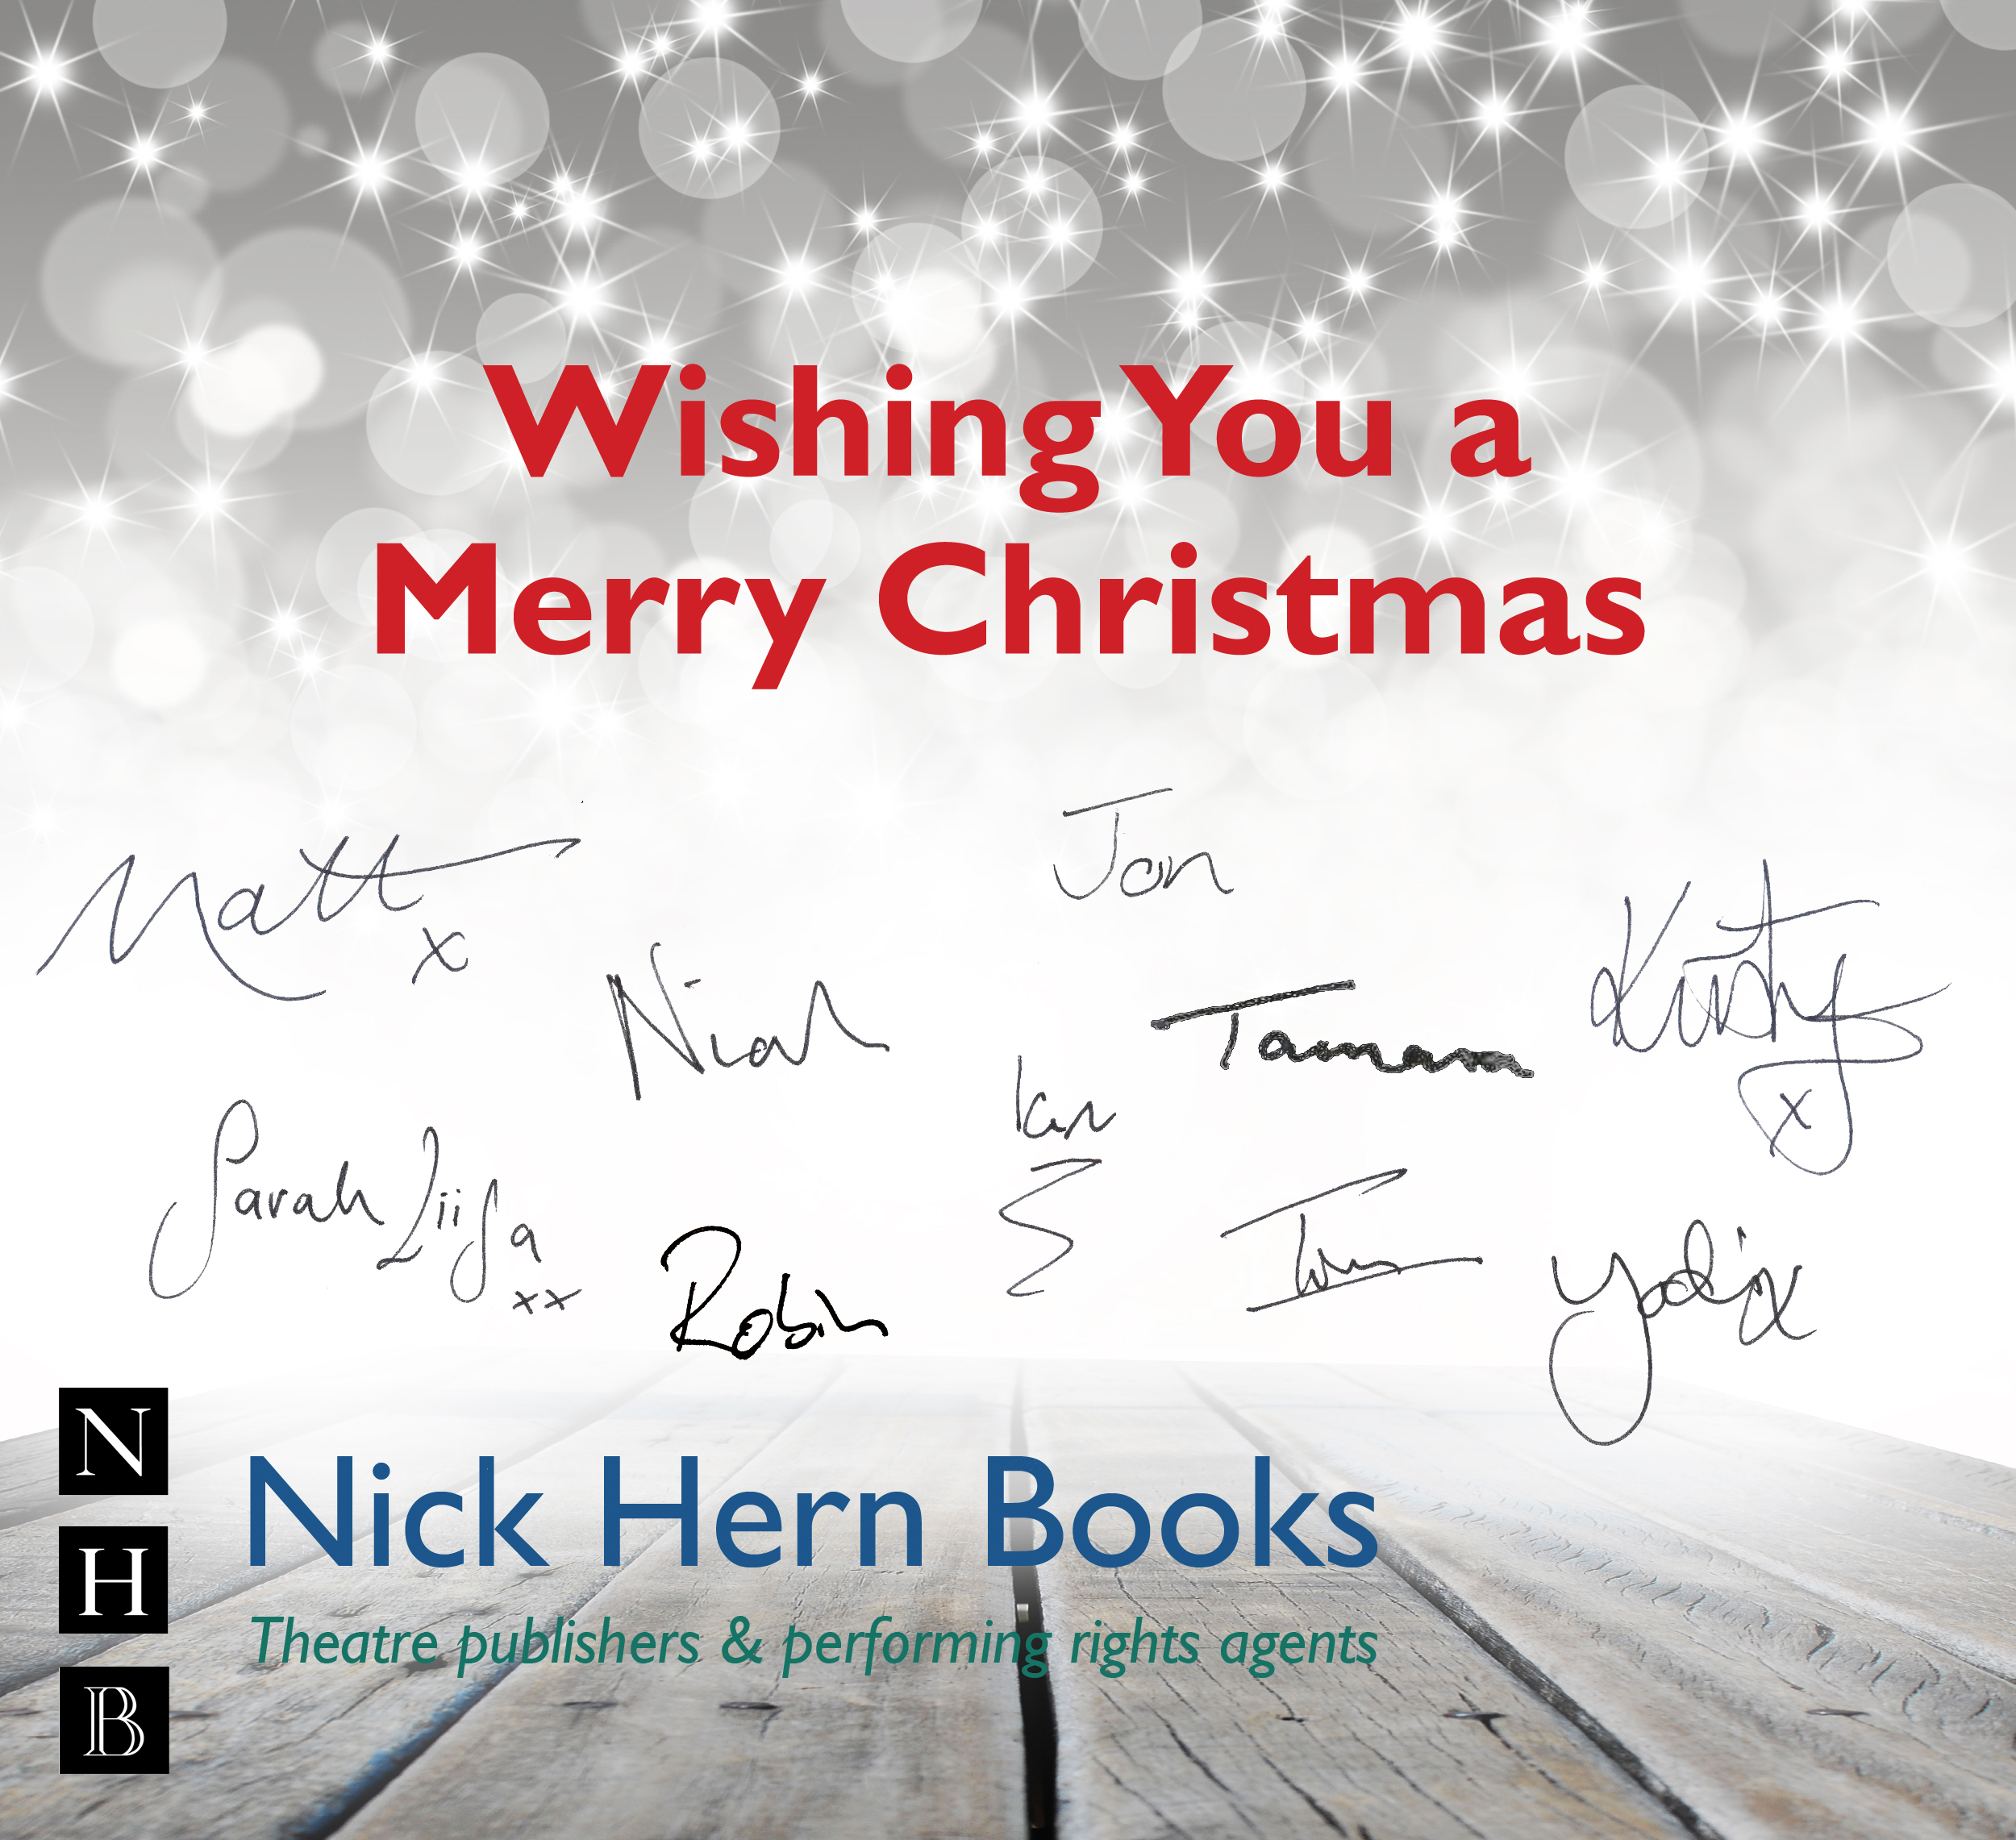 Merry Christmas from NHB